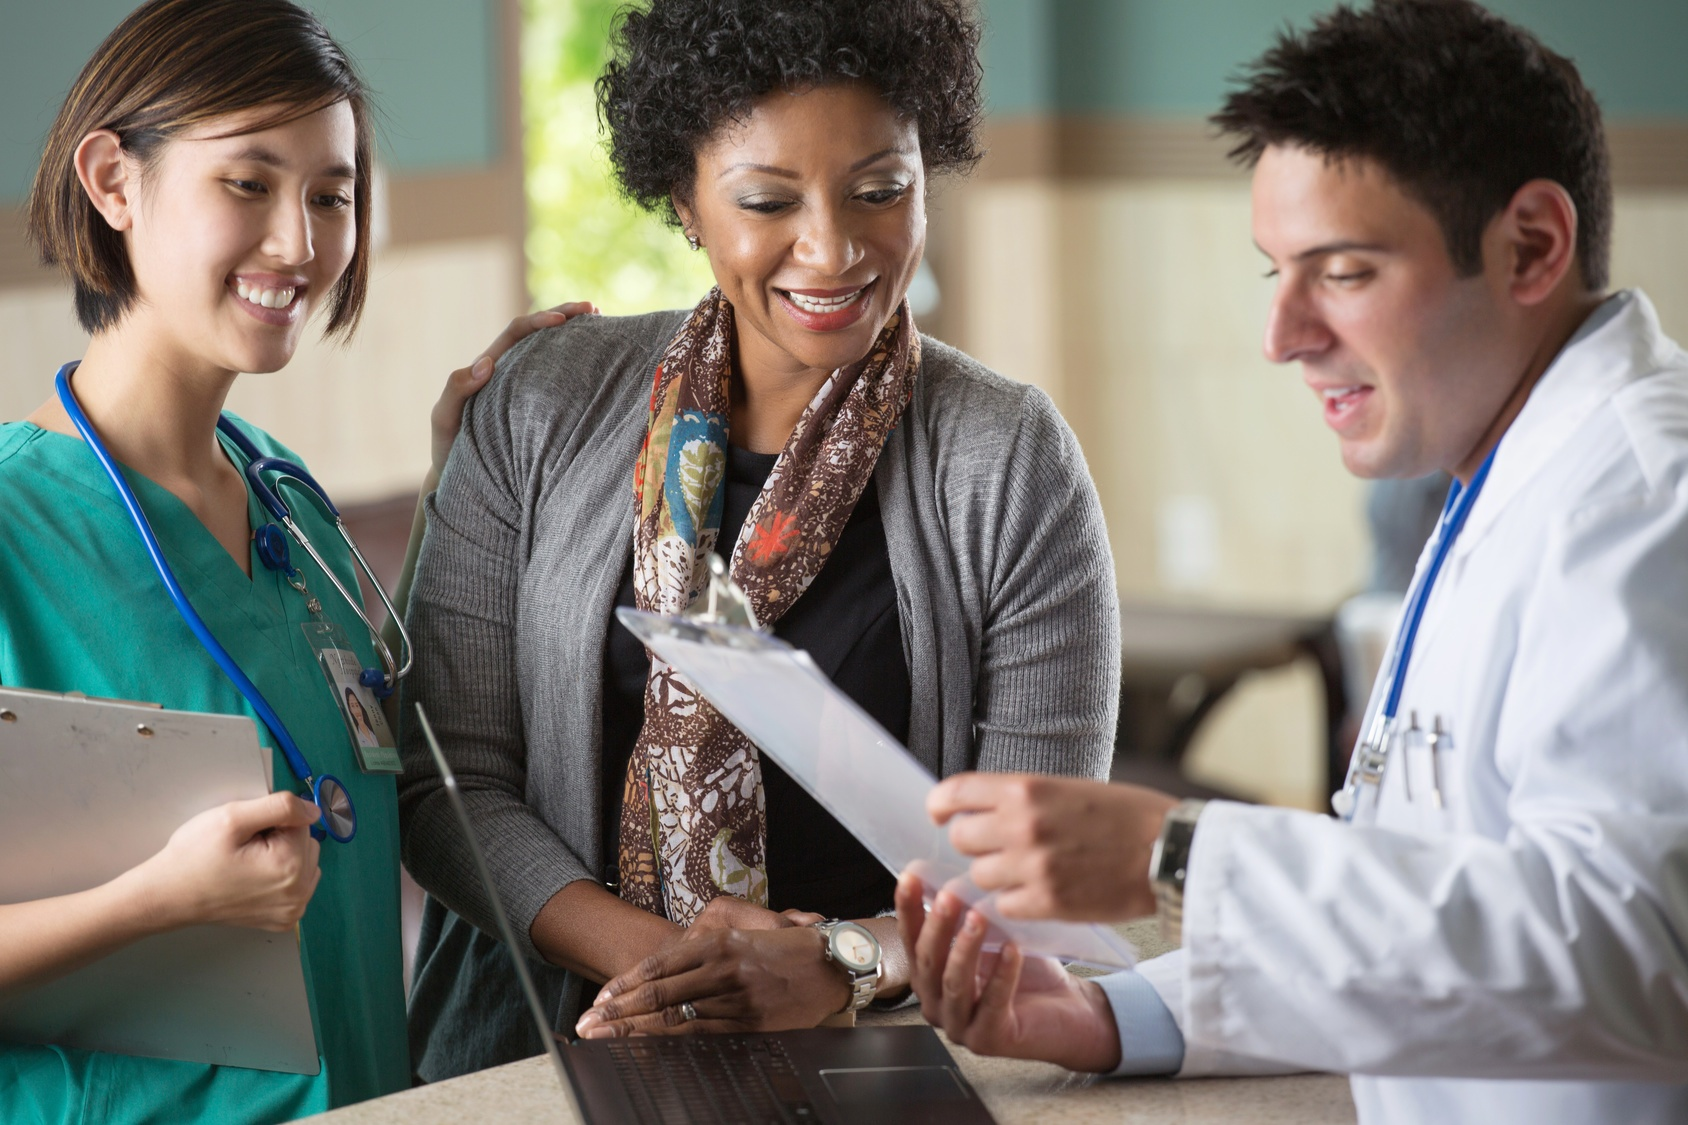 How Health Insurance Impacts Hospital Readmissions